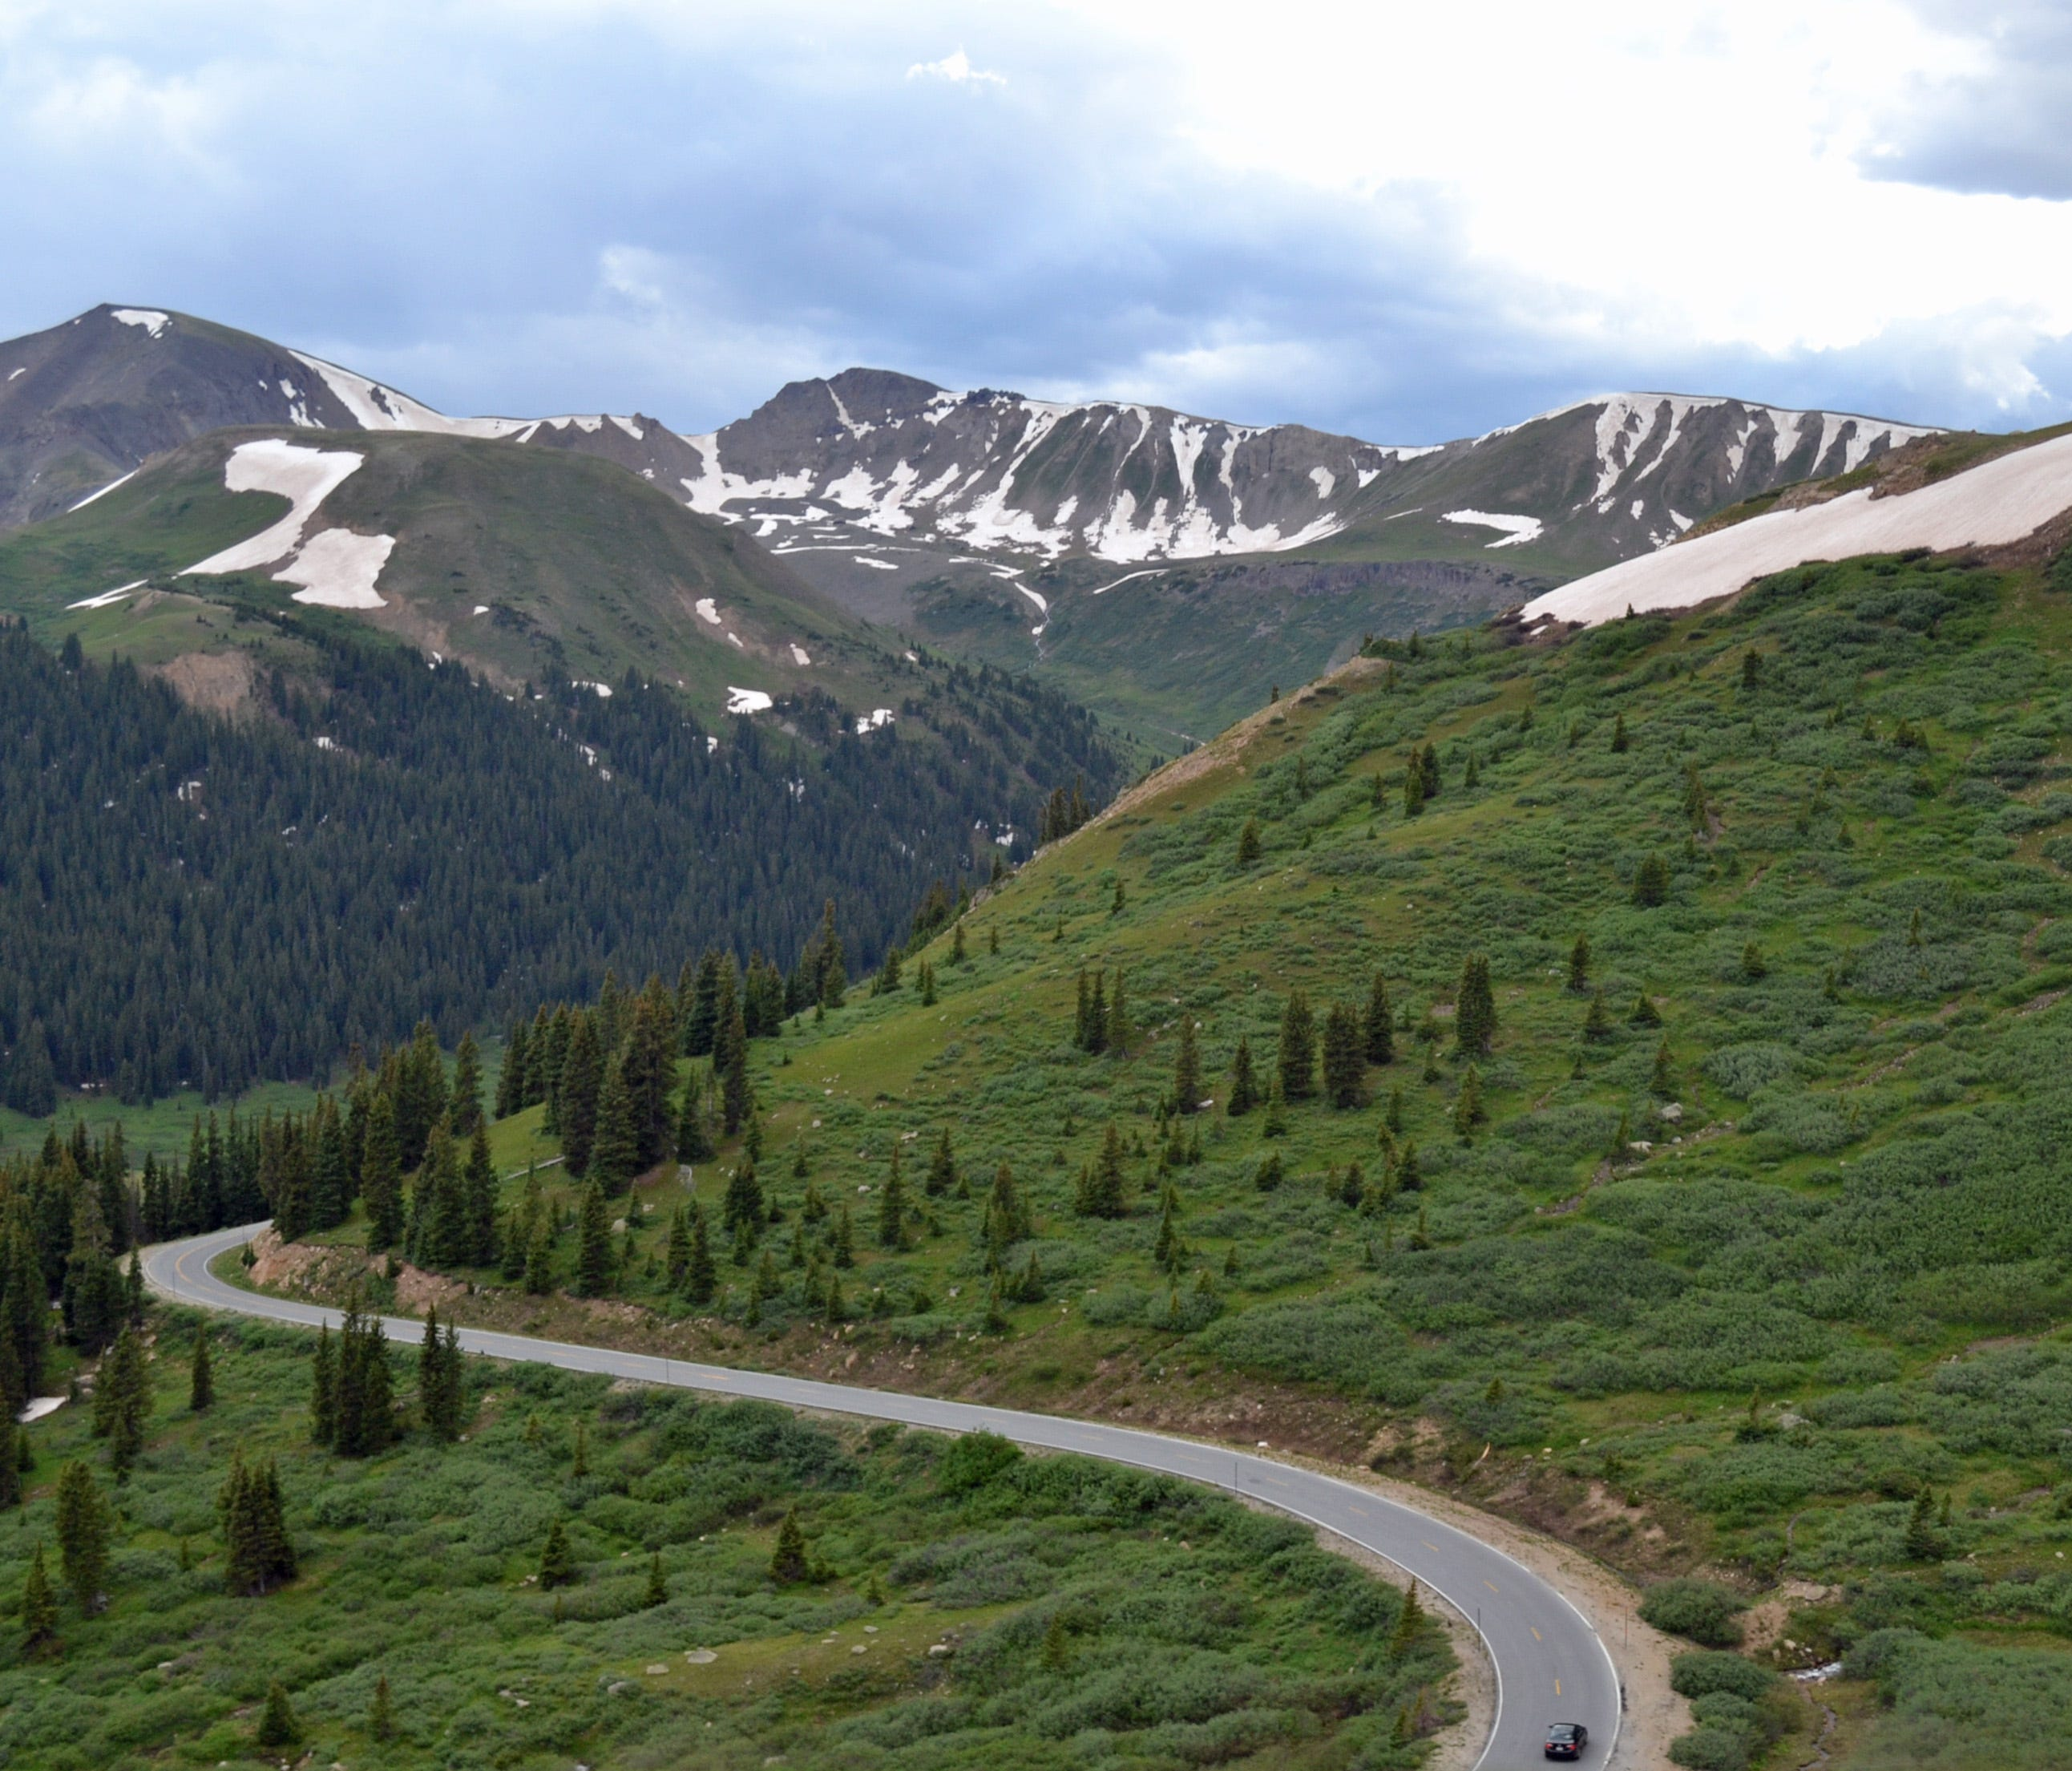 Colorado  Independence Pass  The highest paved state highway in Colorado, and also one of the most scenic, is called Independence Pass. Beautiful panoramic views of the Sawatch Range of the Rocky Mountains can be seen. Due to snow and harsh conditions,